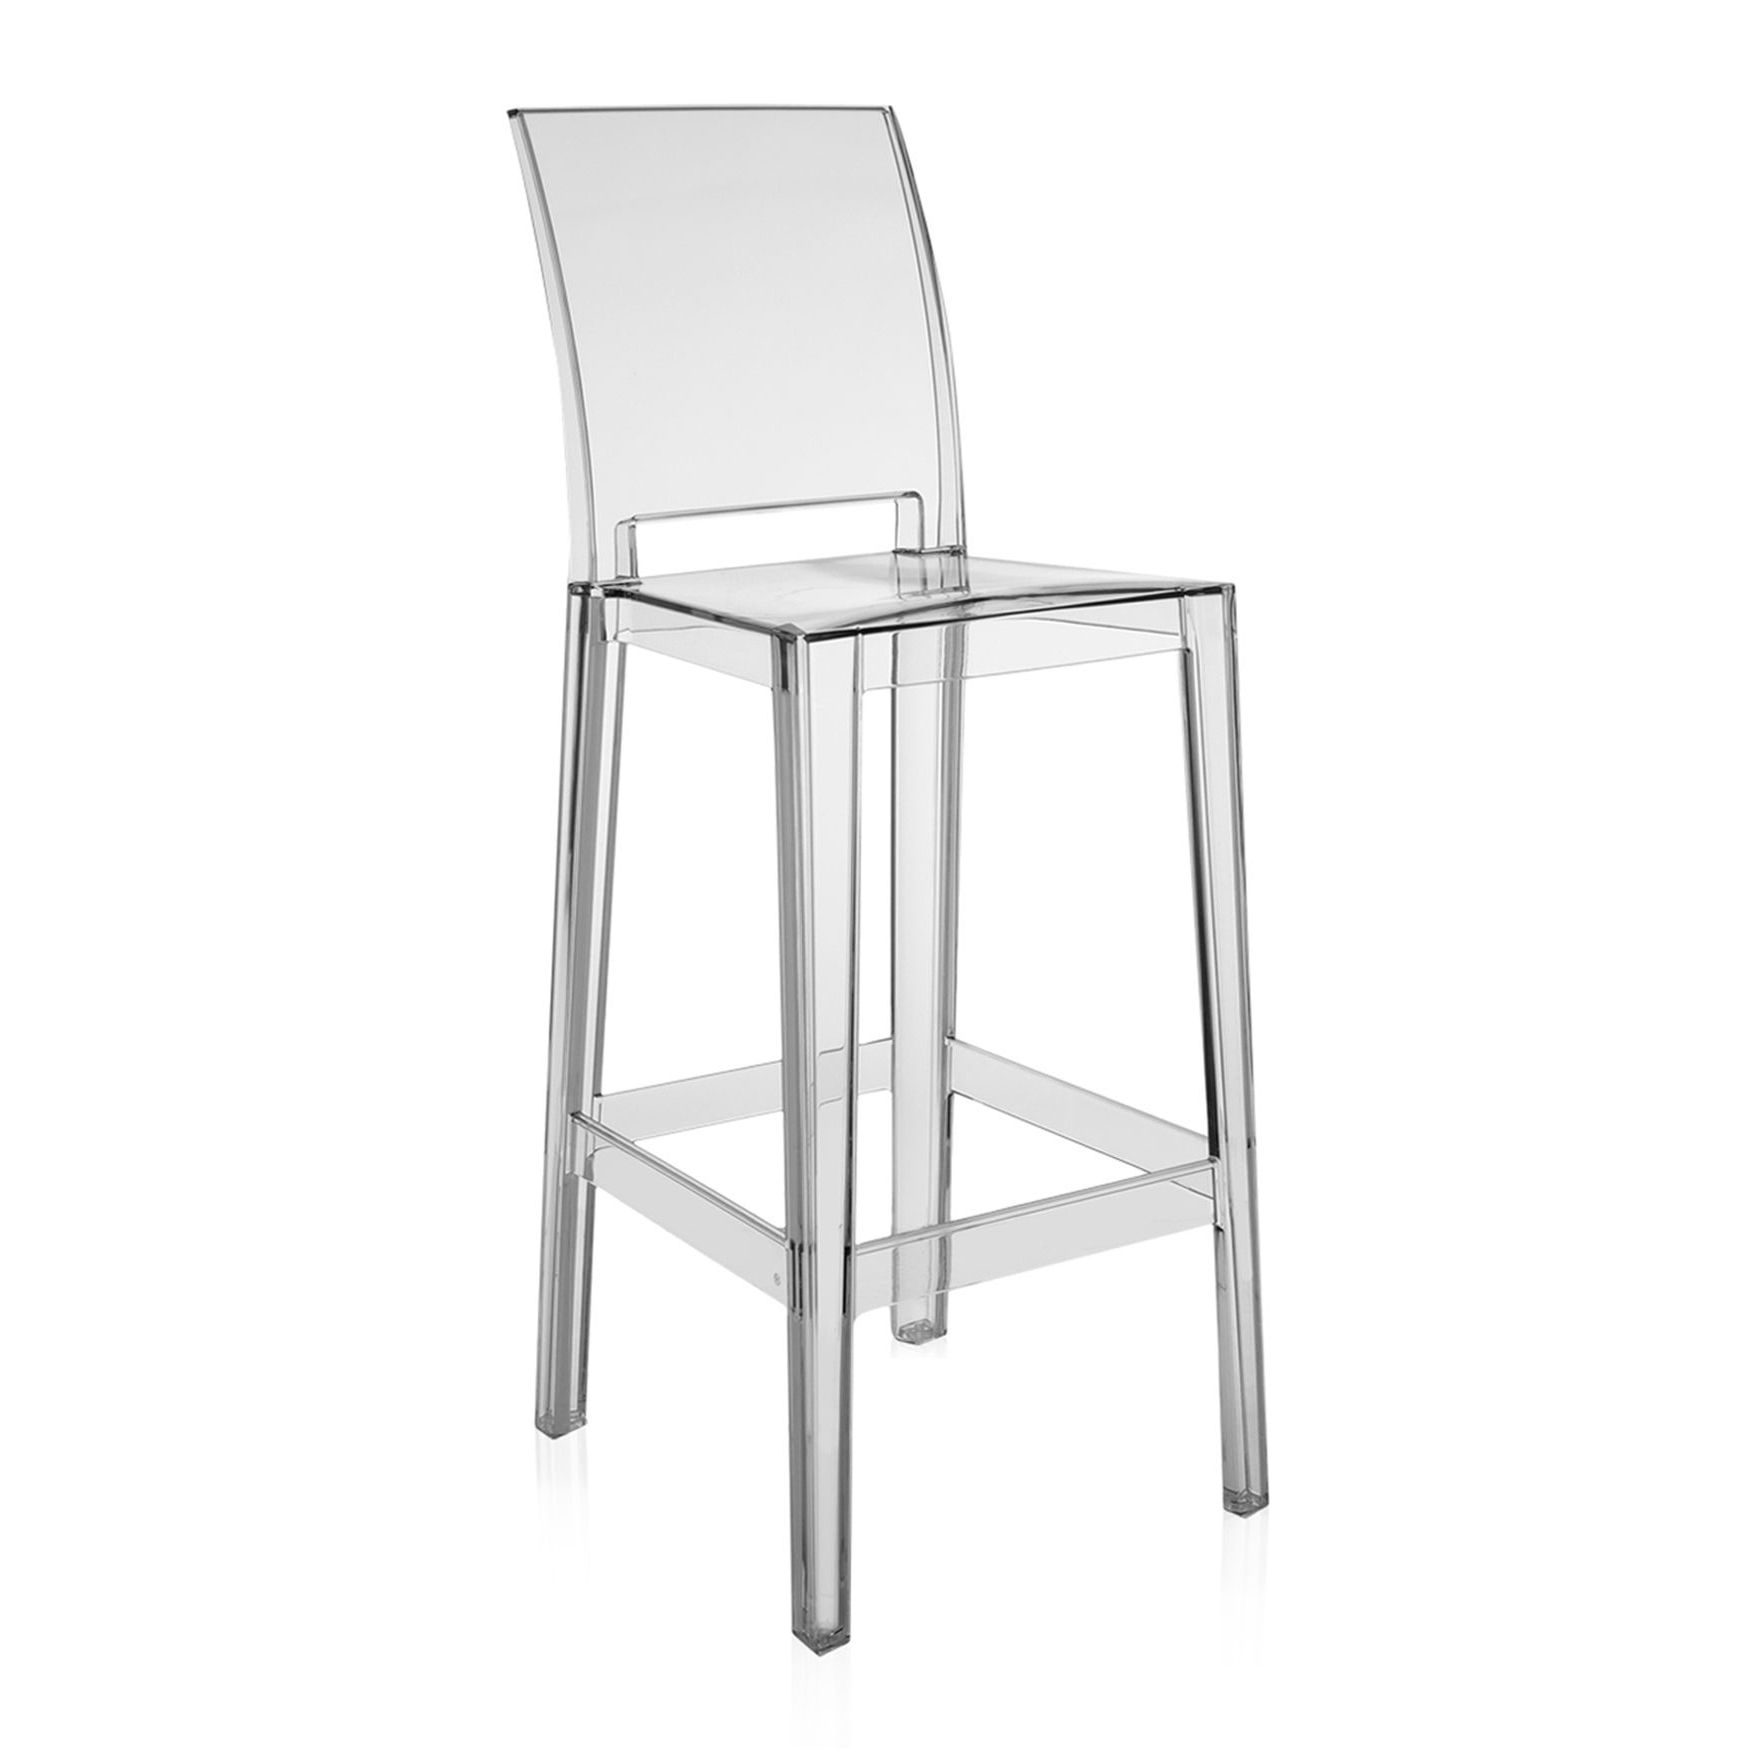 Bar Stool Clear Ghost Chair Bar Stool Clear Ghost Chair For More Ideas You Just Have To Click The Link Enjoy In 2020 Bar Stools Folding Bar Stools Stool